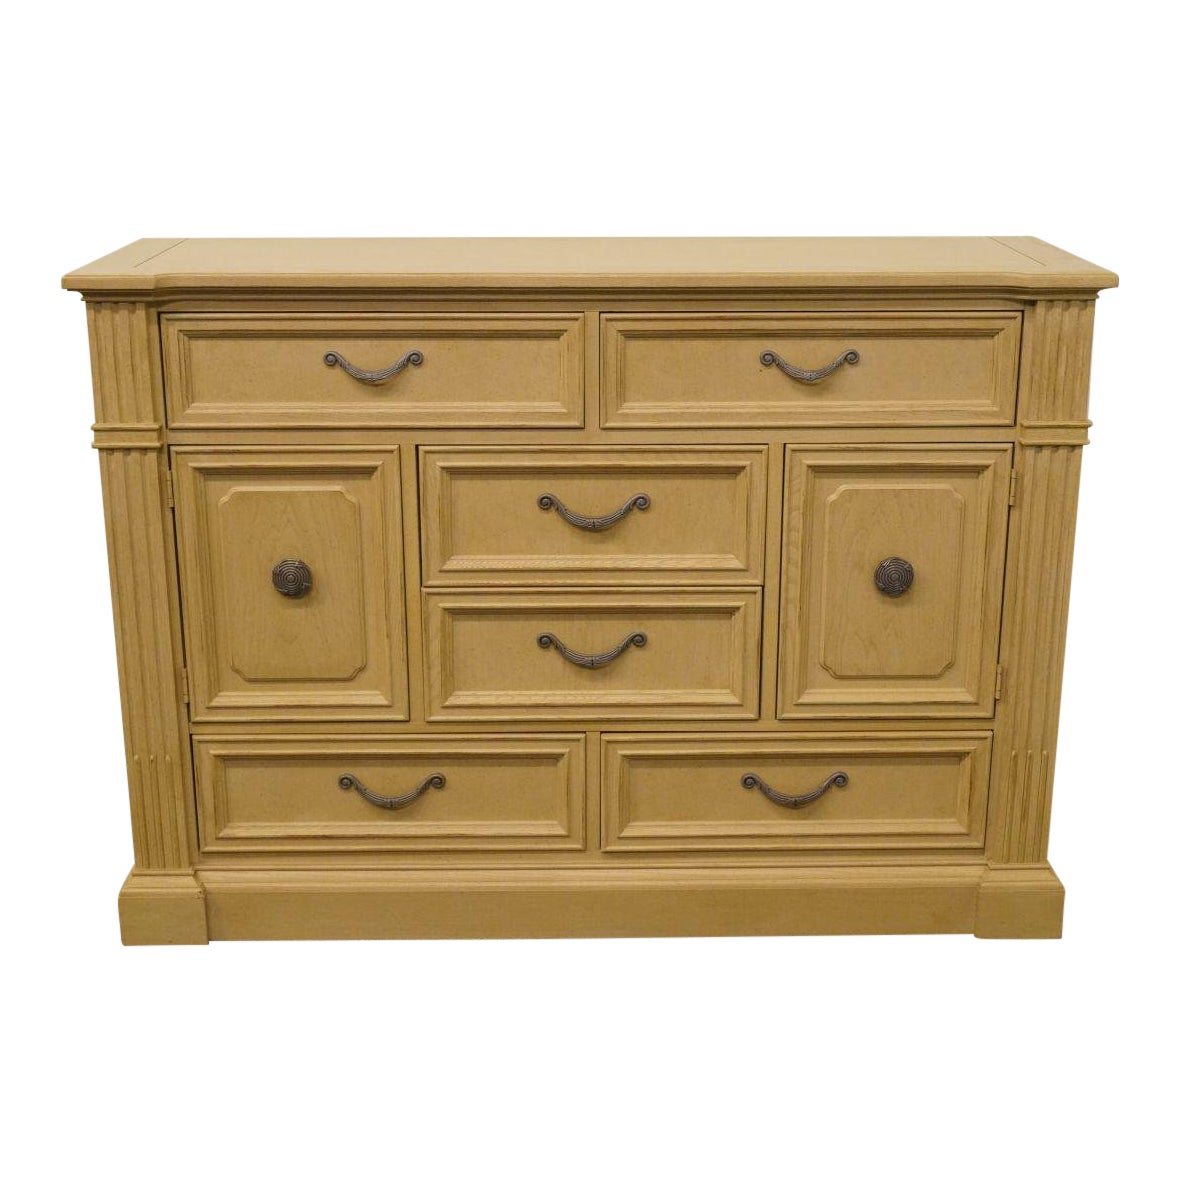 20th century traditional stanley furniture european heritage collection blonde dressing chest chairish